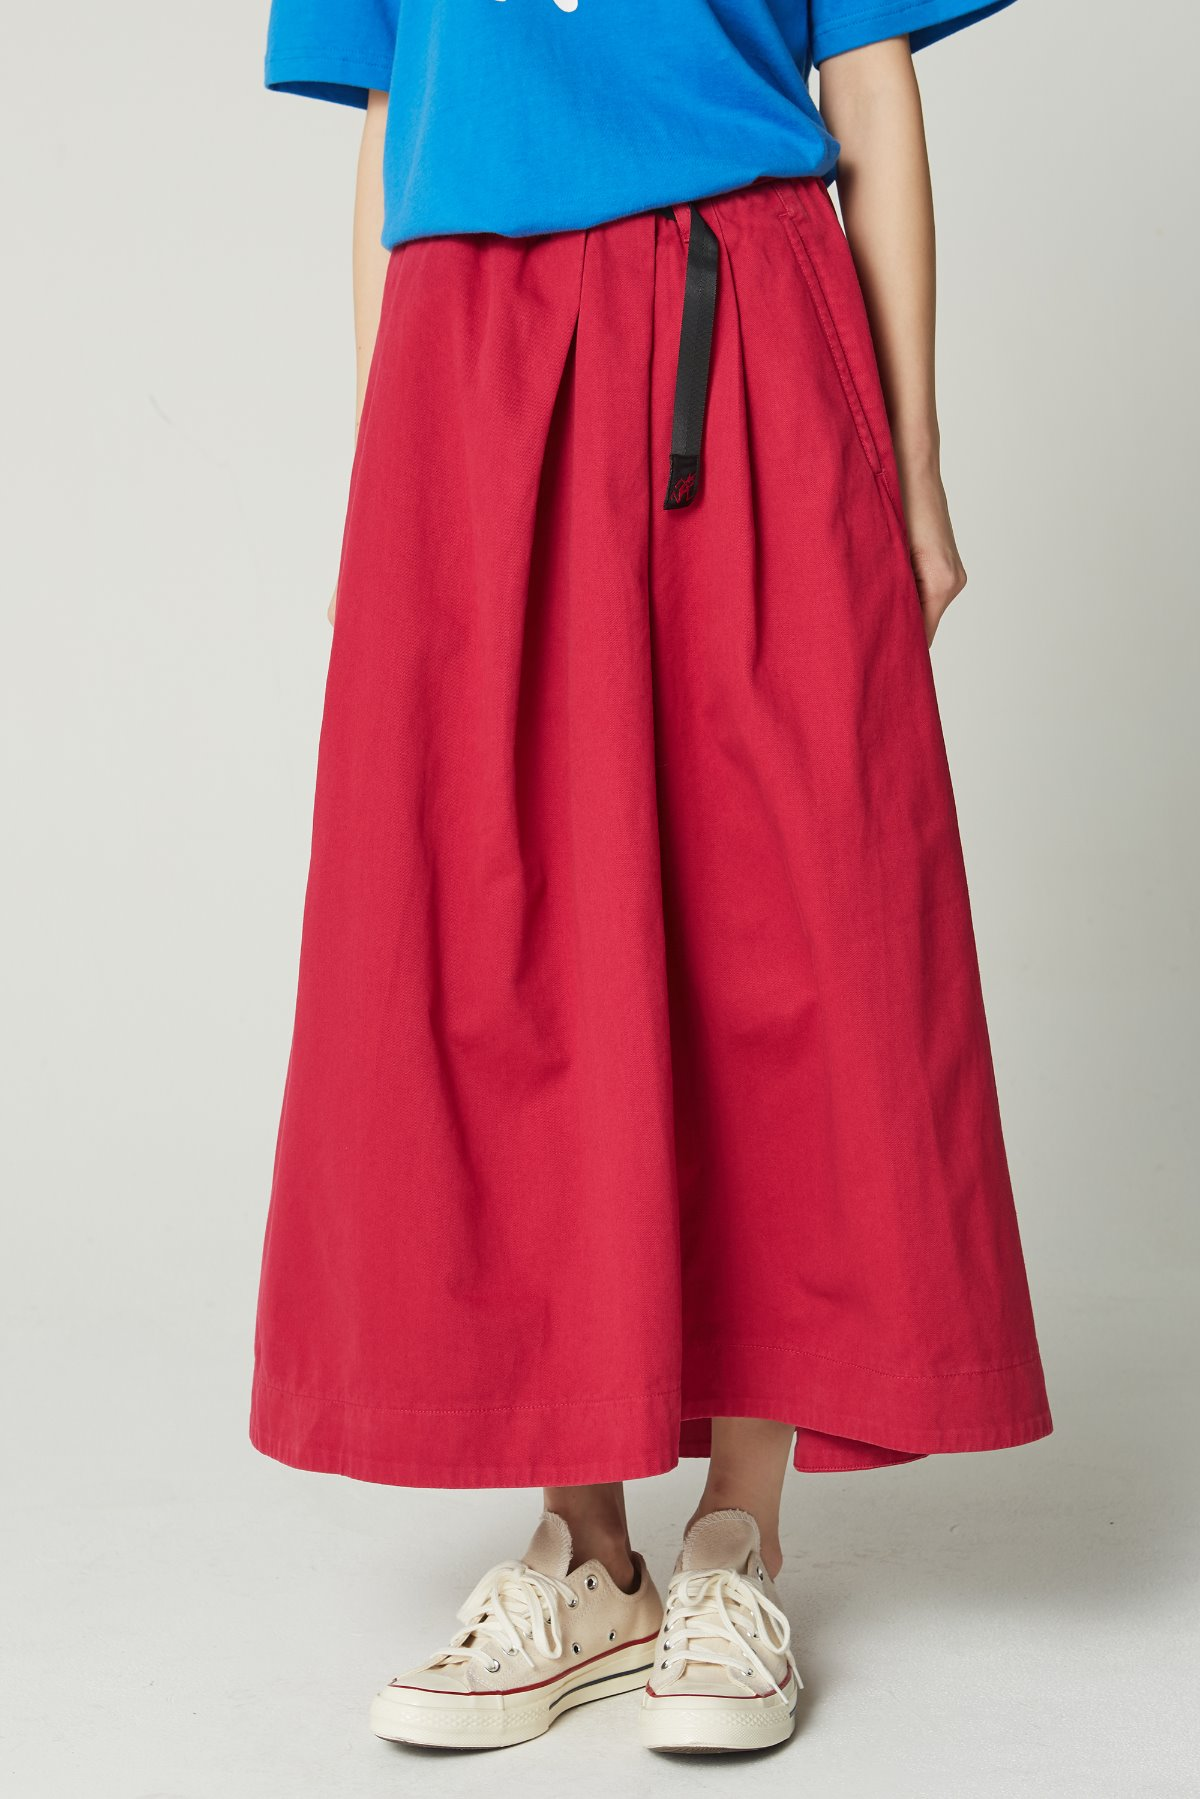 TALE CUT SKIRT RASPBERRY